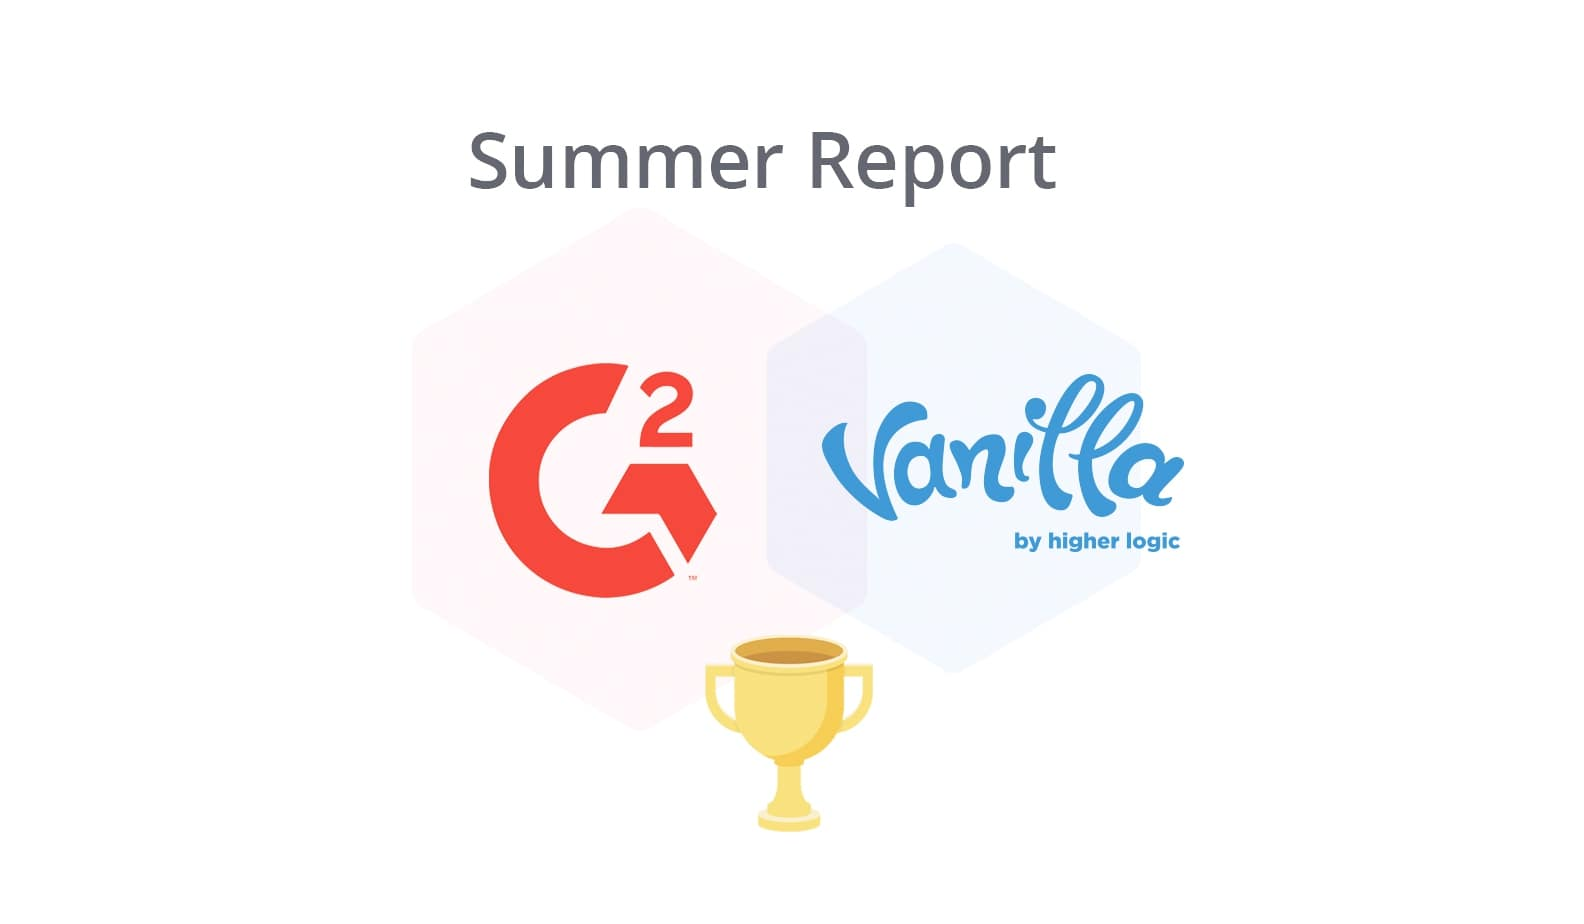 The G2 Summer Report Names Vanilla by Higher Logic a Leader in Online Community Management